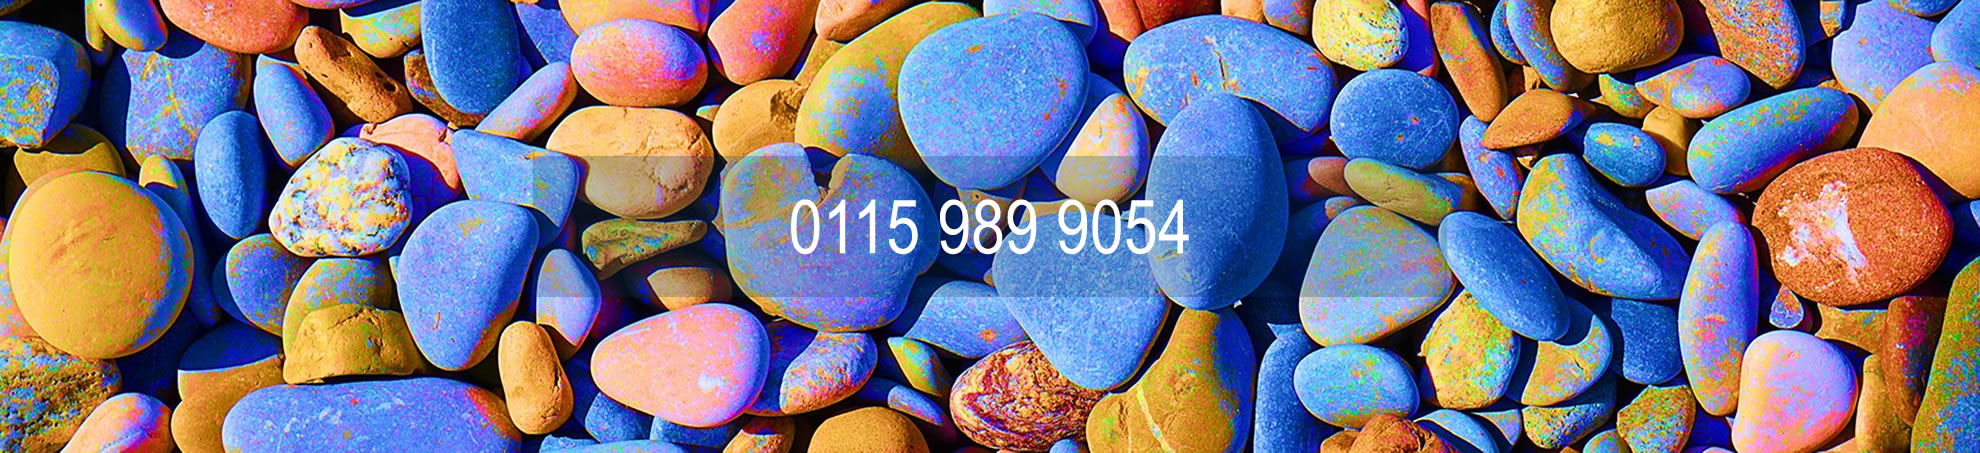 Image of Accountants for small businesses Nottingham - Index Header